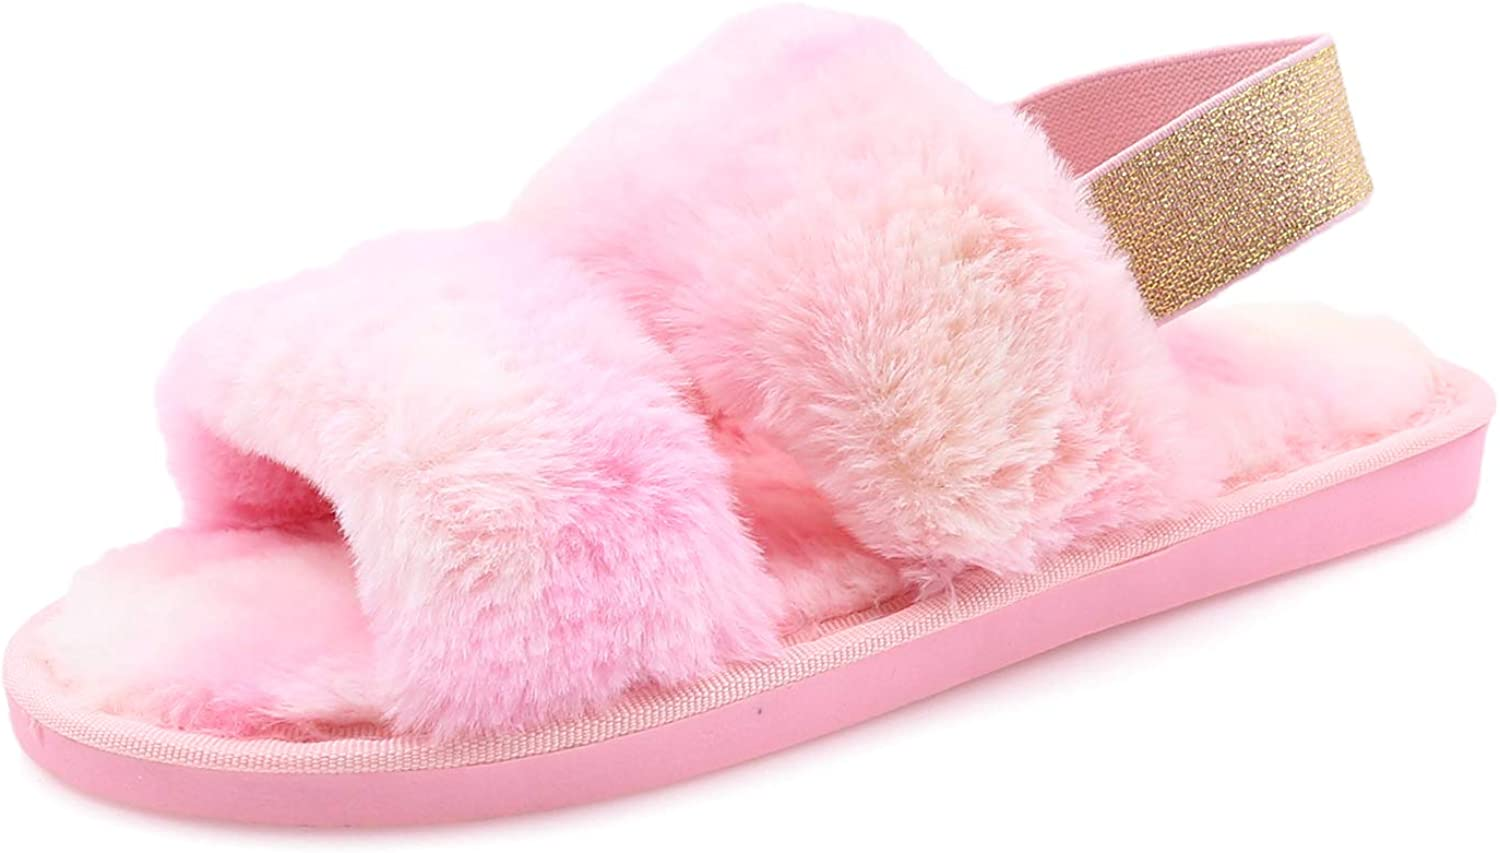 Women's House Fuzzy Slipper Fluffy Sandals Slides Leopard Print Soft Warm Comfy Cozy Bedroom Open Toe House Indoor Outdoor Slippers Sandals with Elastic Strap (Rainbow-Pink, Numeric_5)